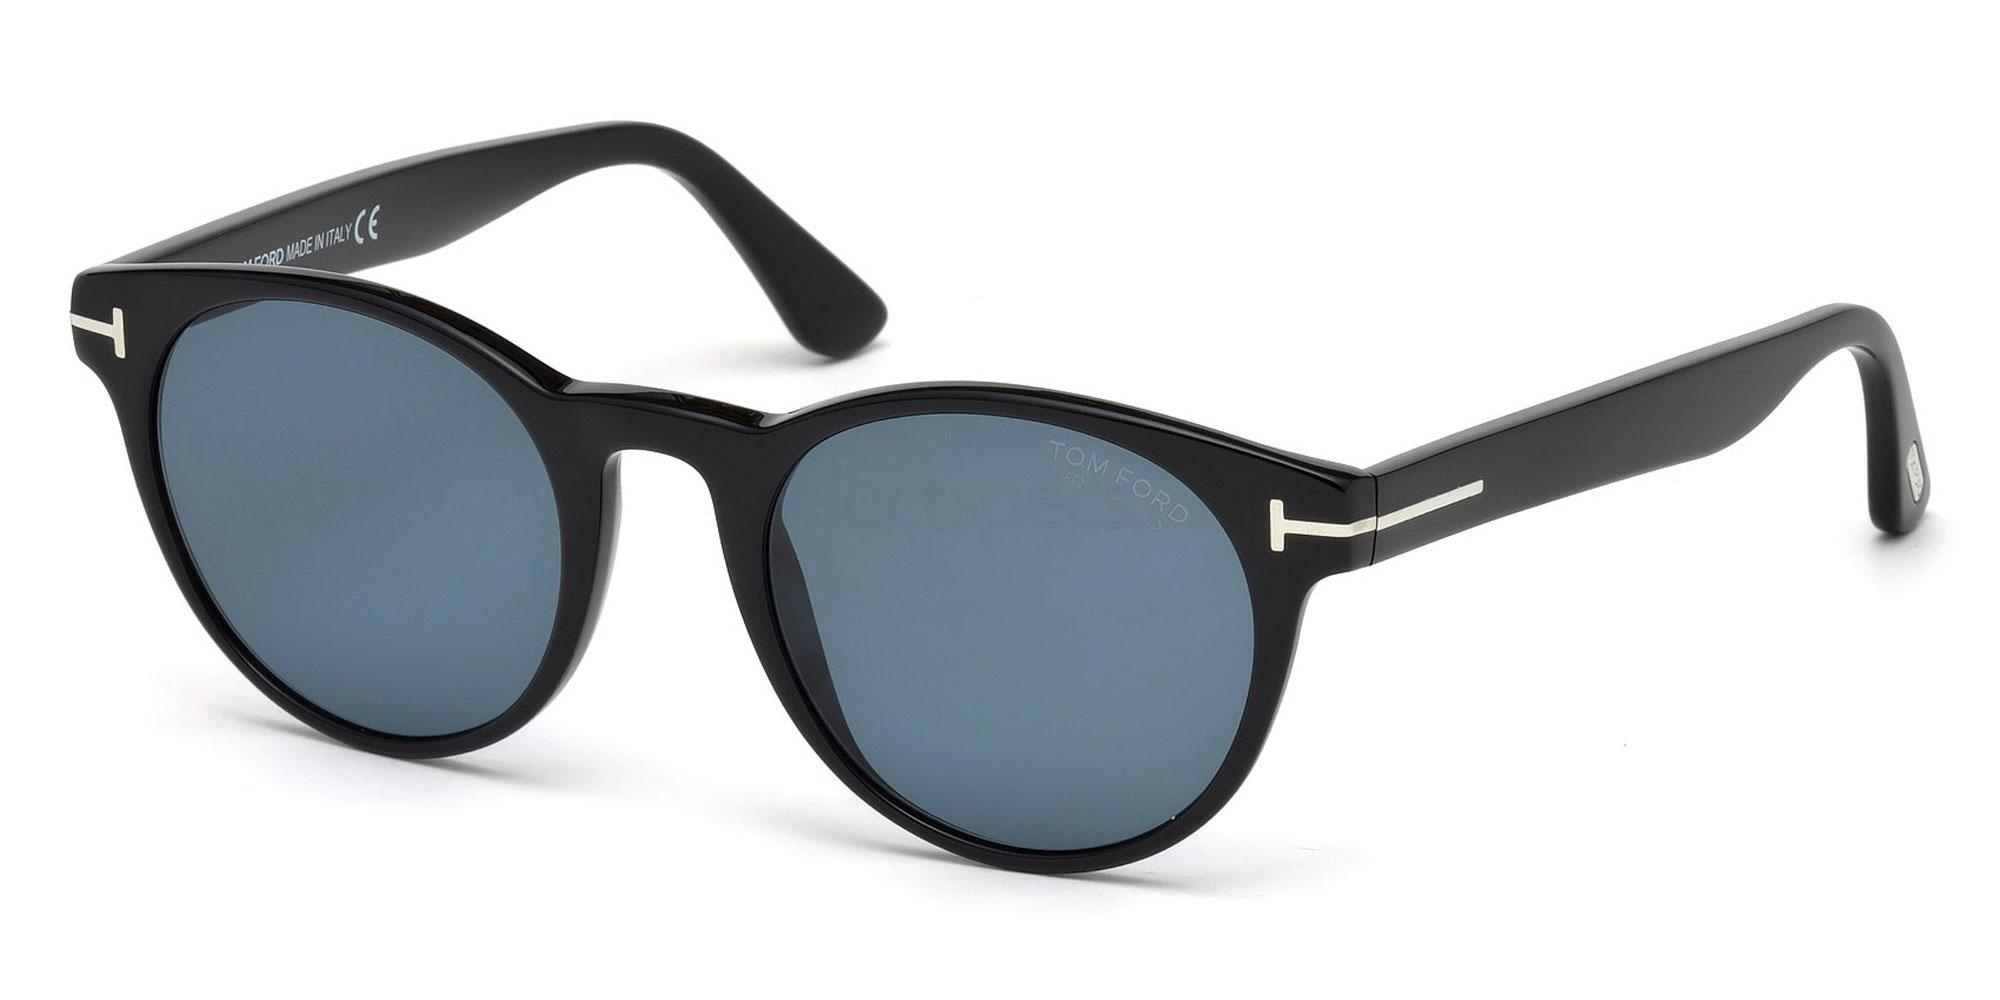 7bbe1f9b336 Find tom ford olivier 05b gradient smoke £284 sunglasses . Shop ...